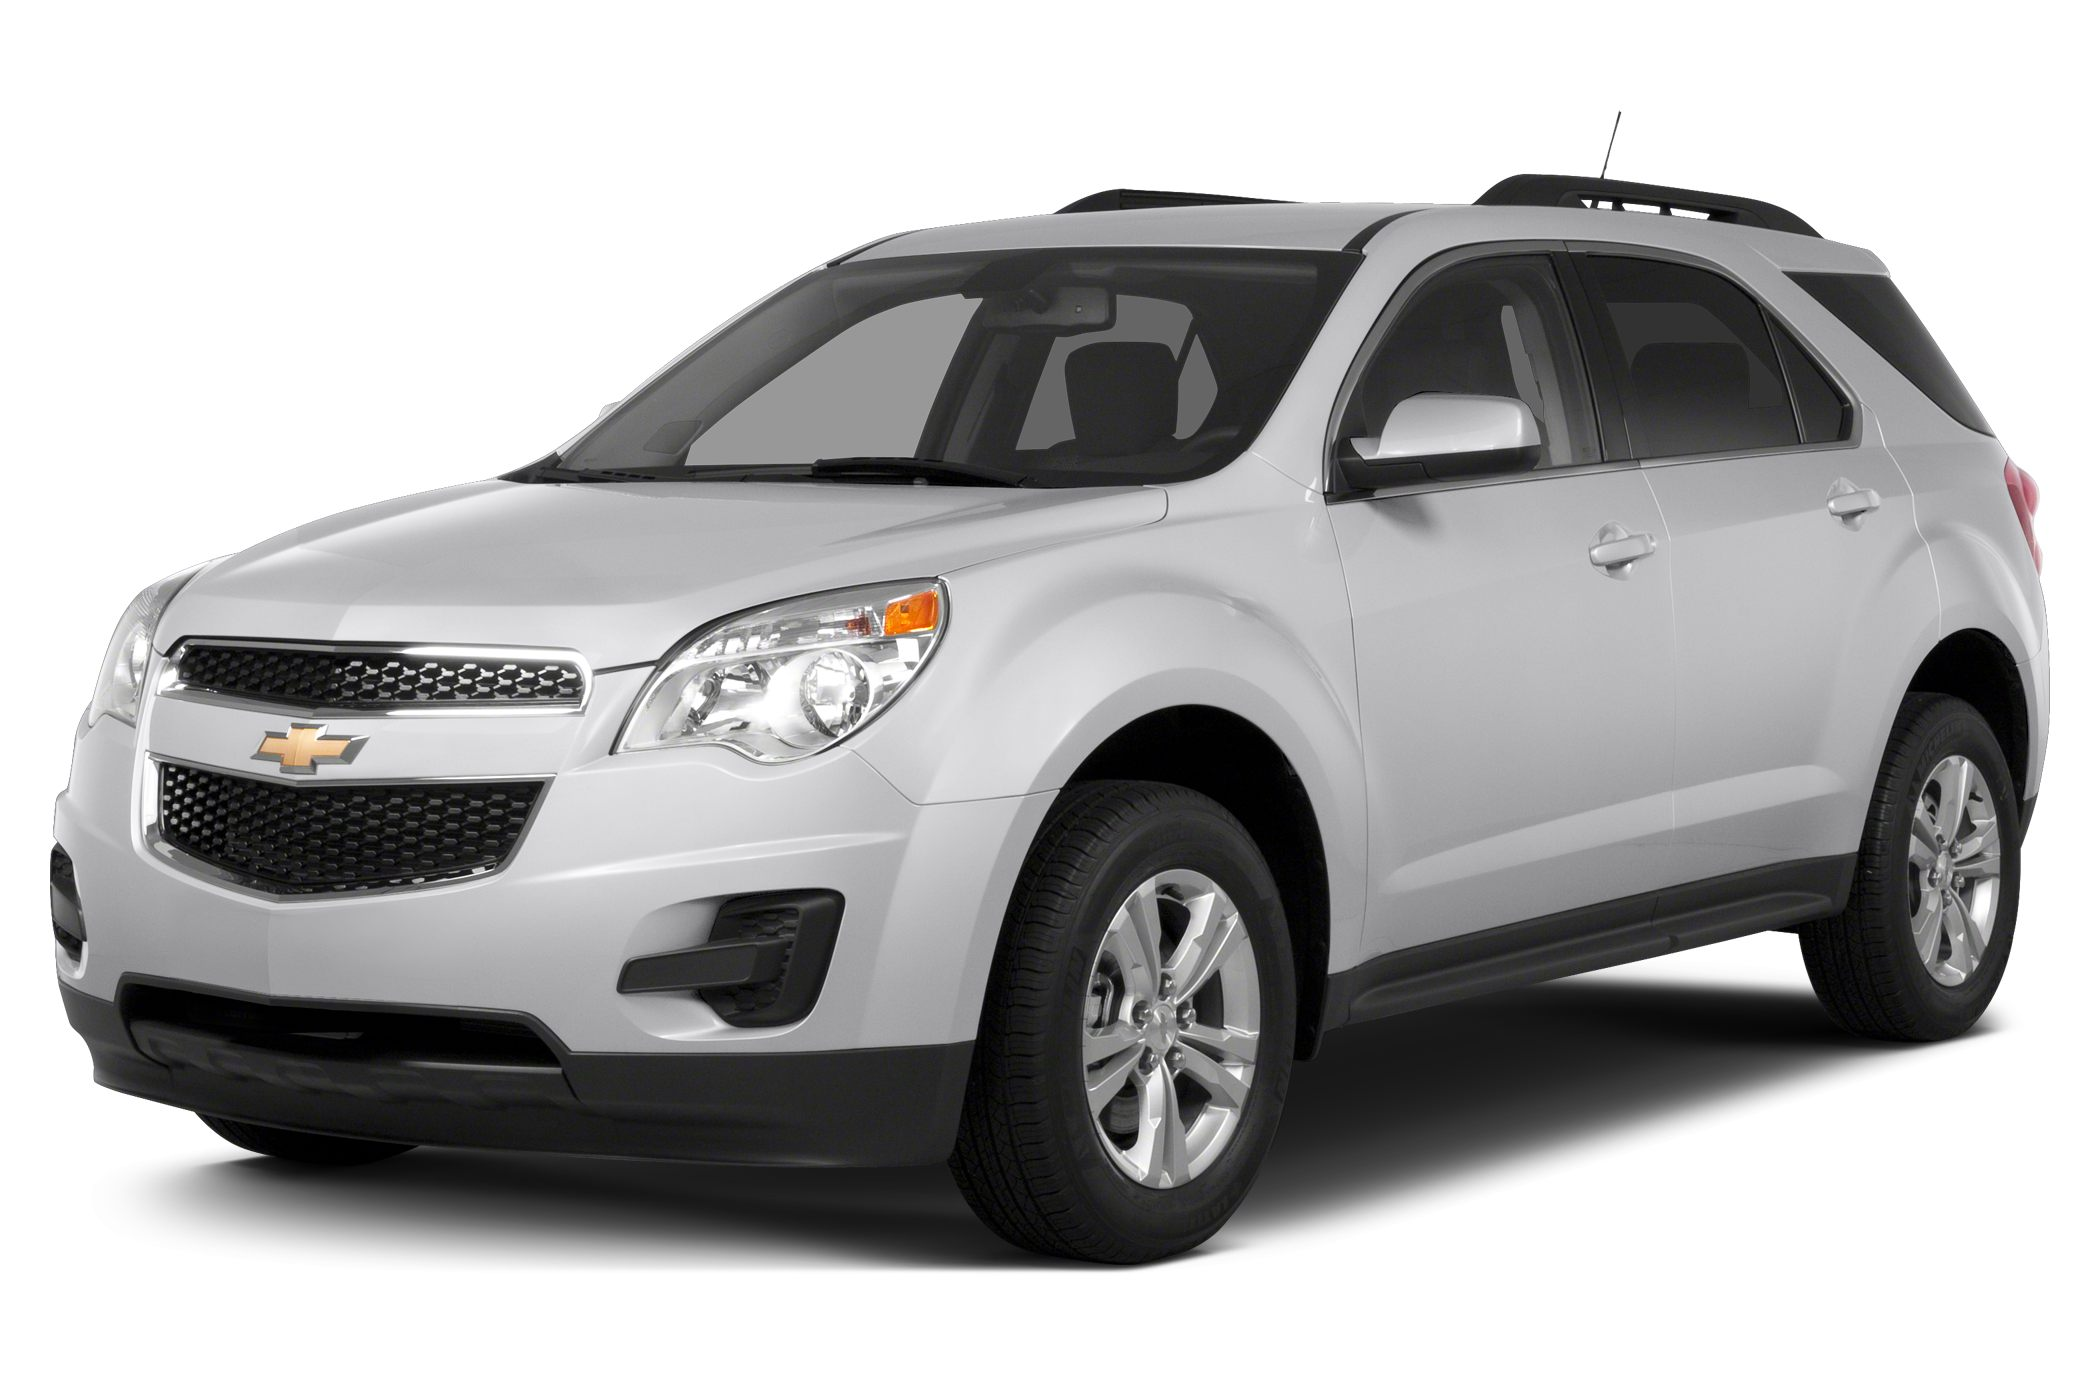 2015 Chevrolet Equinox LTZ SUV for sale in Lockport for $34,632 with 5 miles.